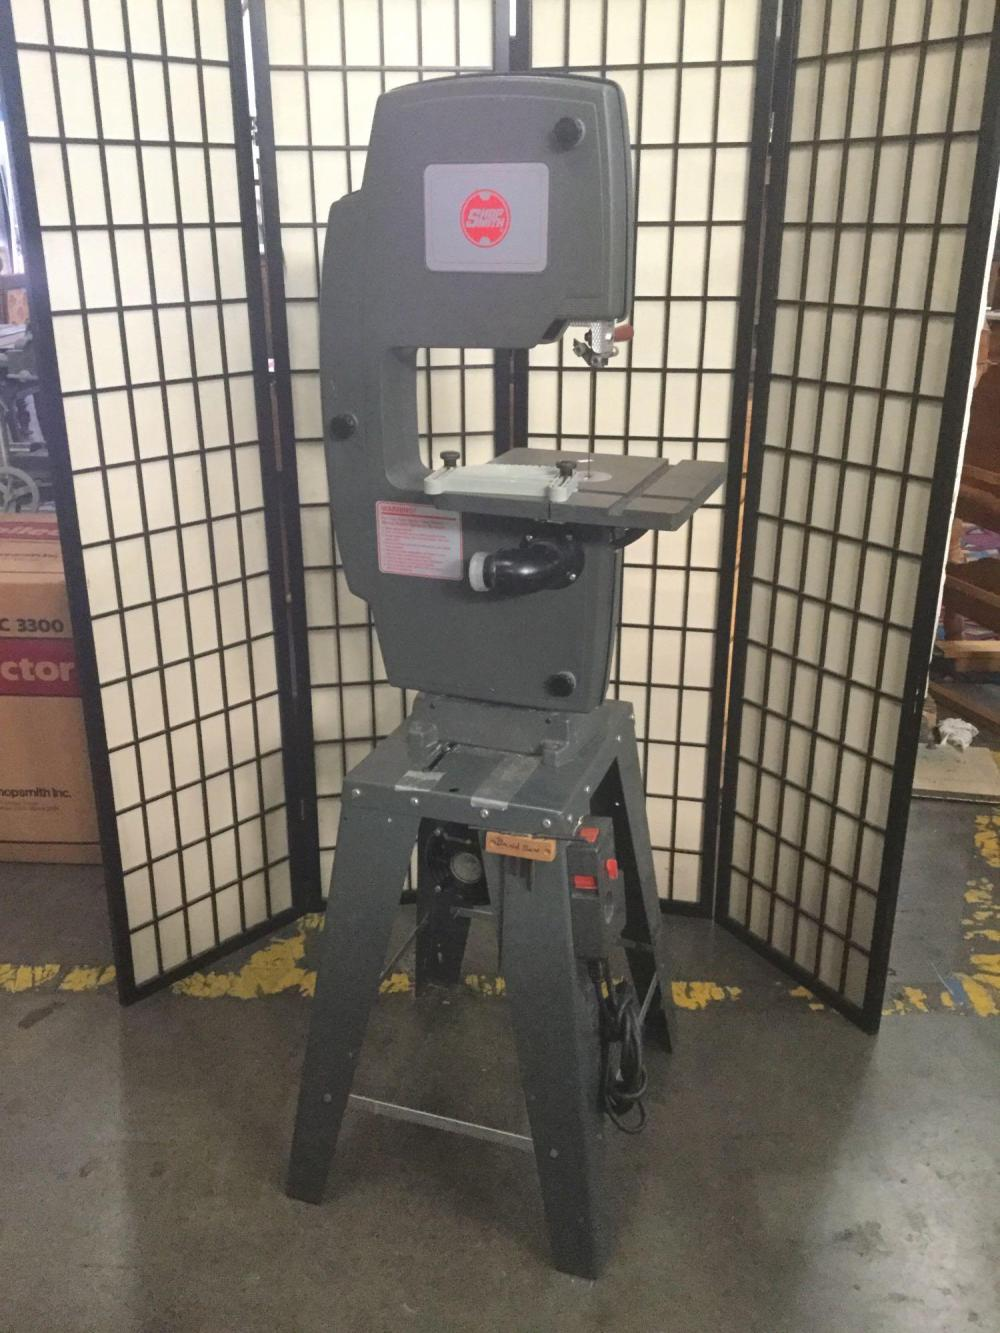 Lot 238: Shop smith 11 inch band saw. Tested and working